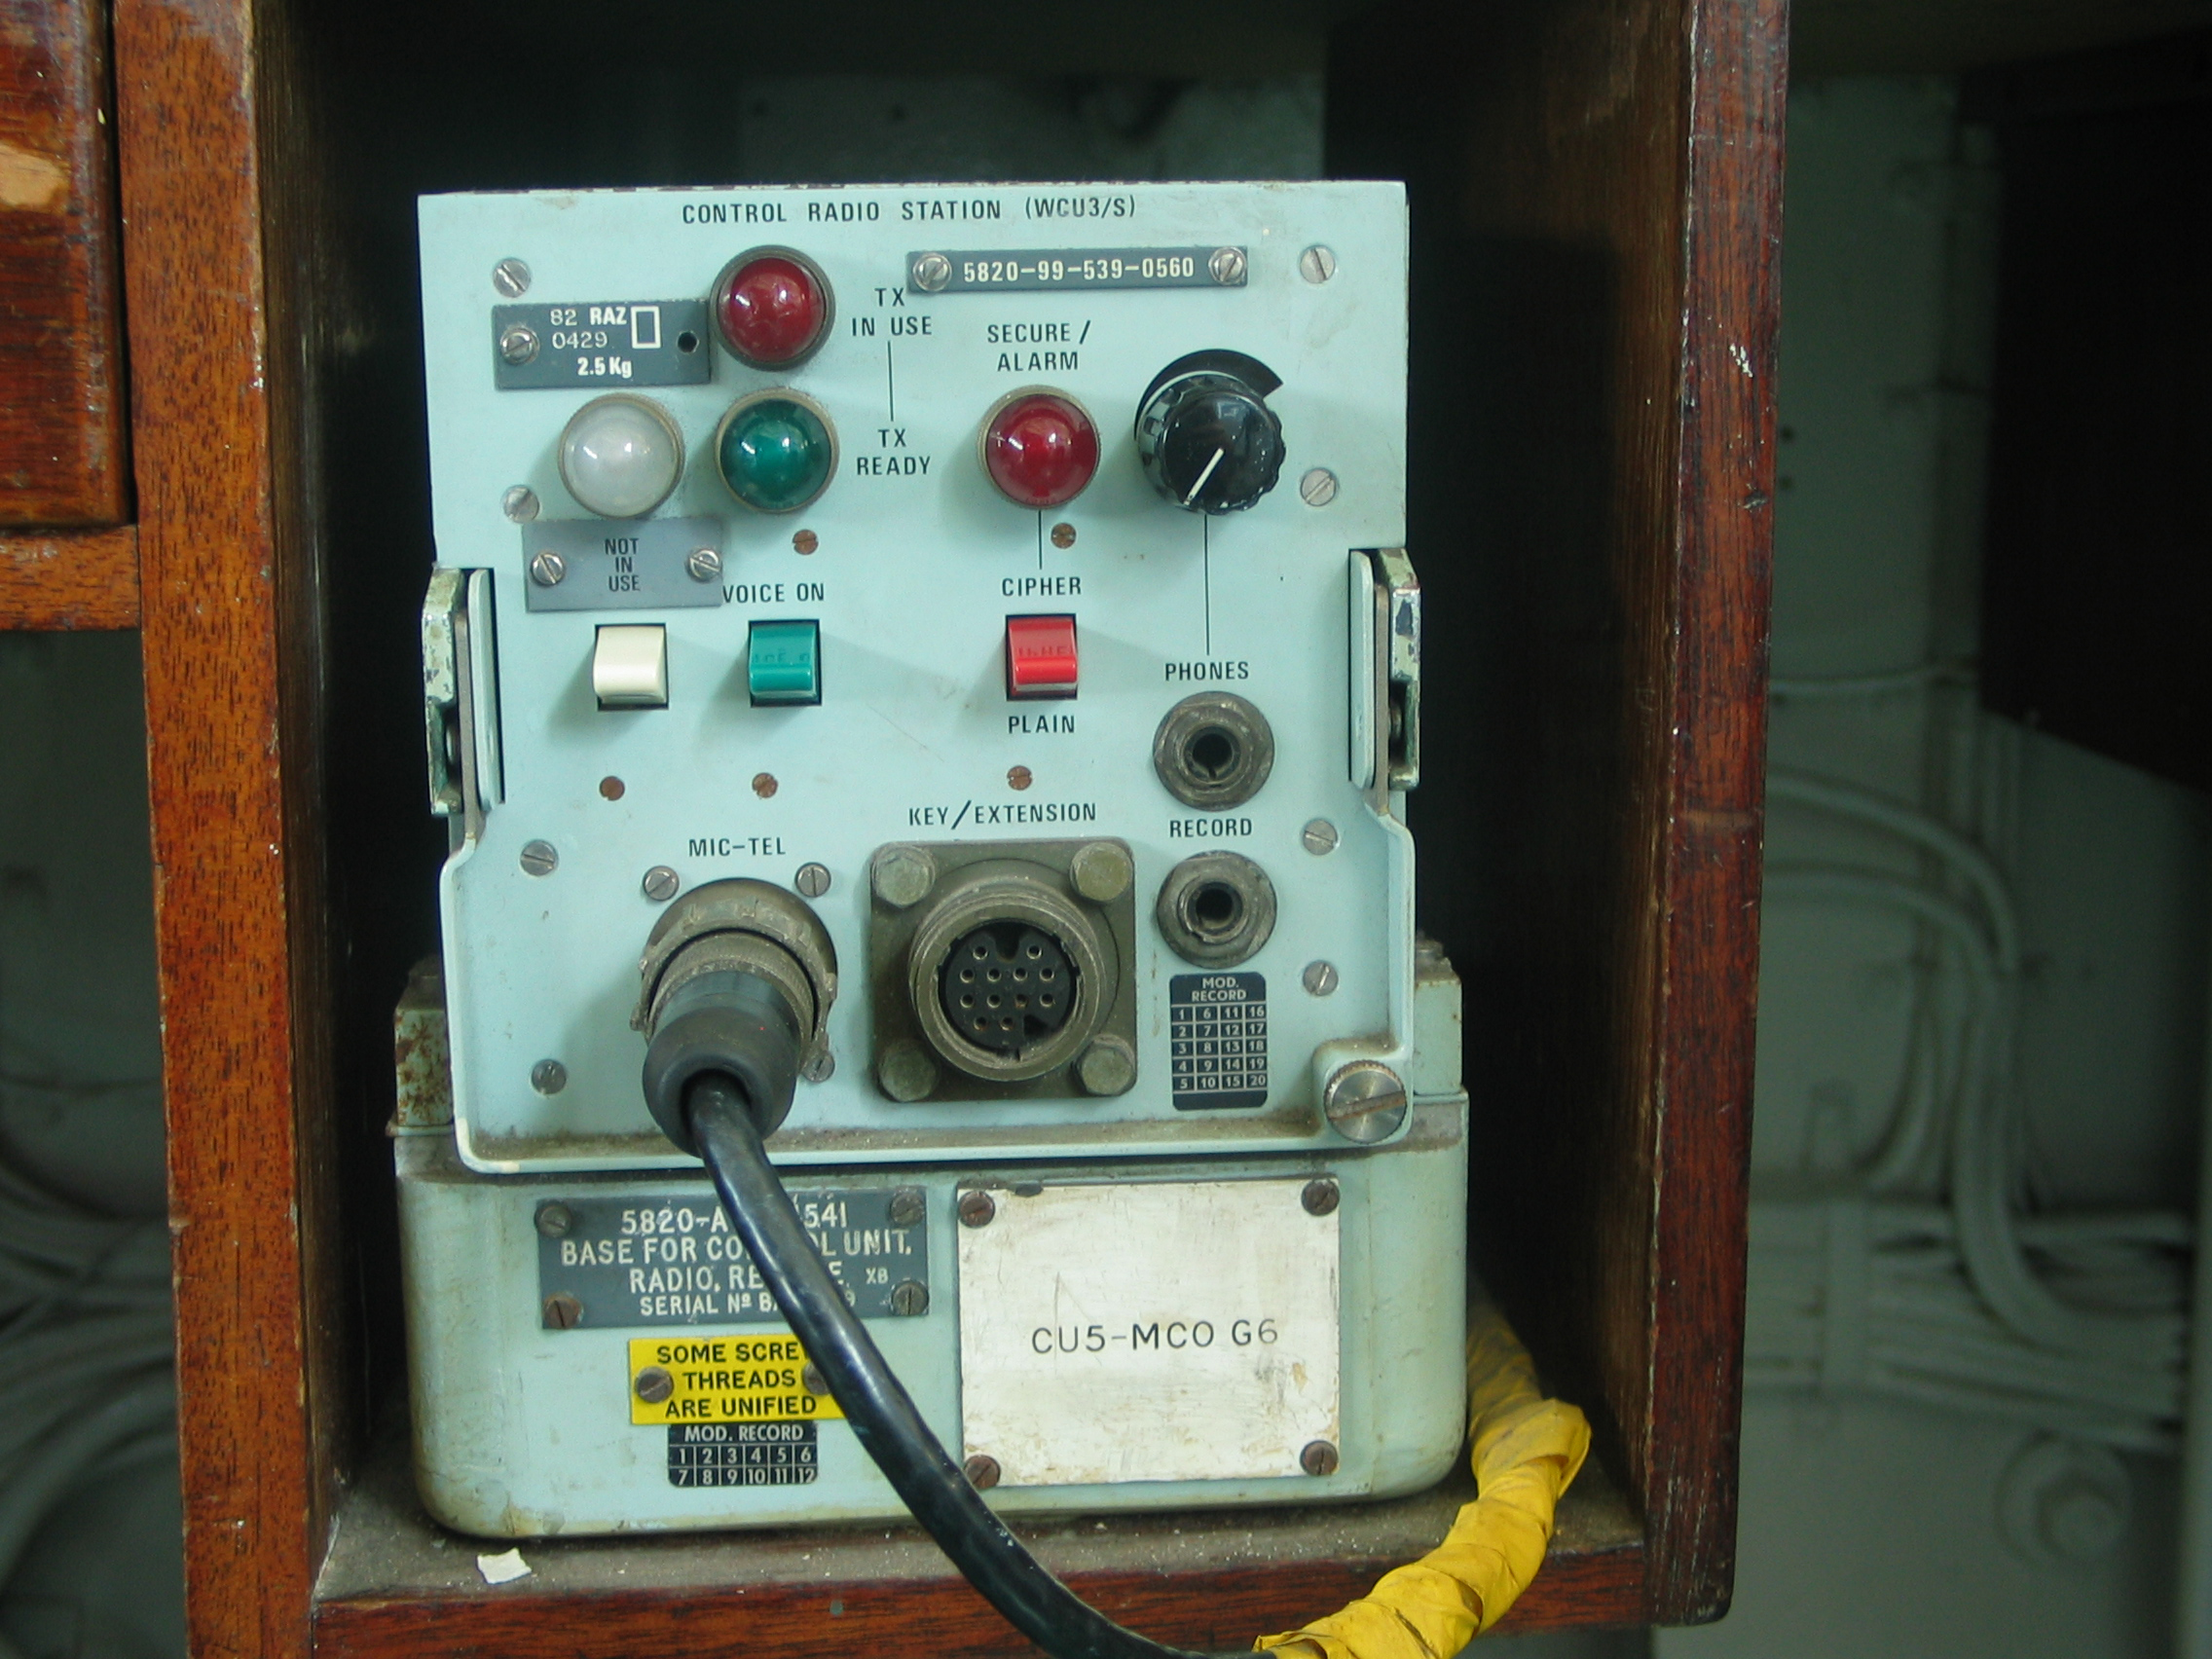 iain controls radio station control wc3u/s buttons switches lamps lights